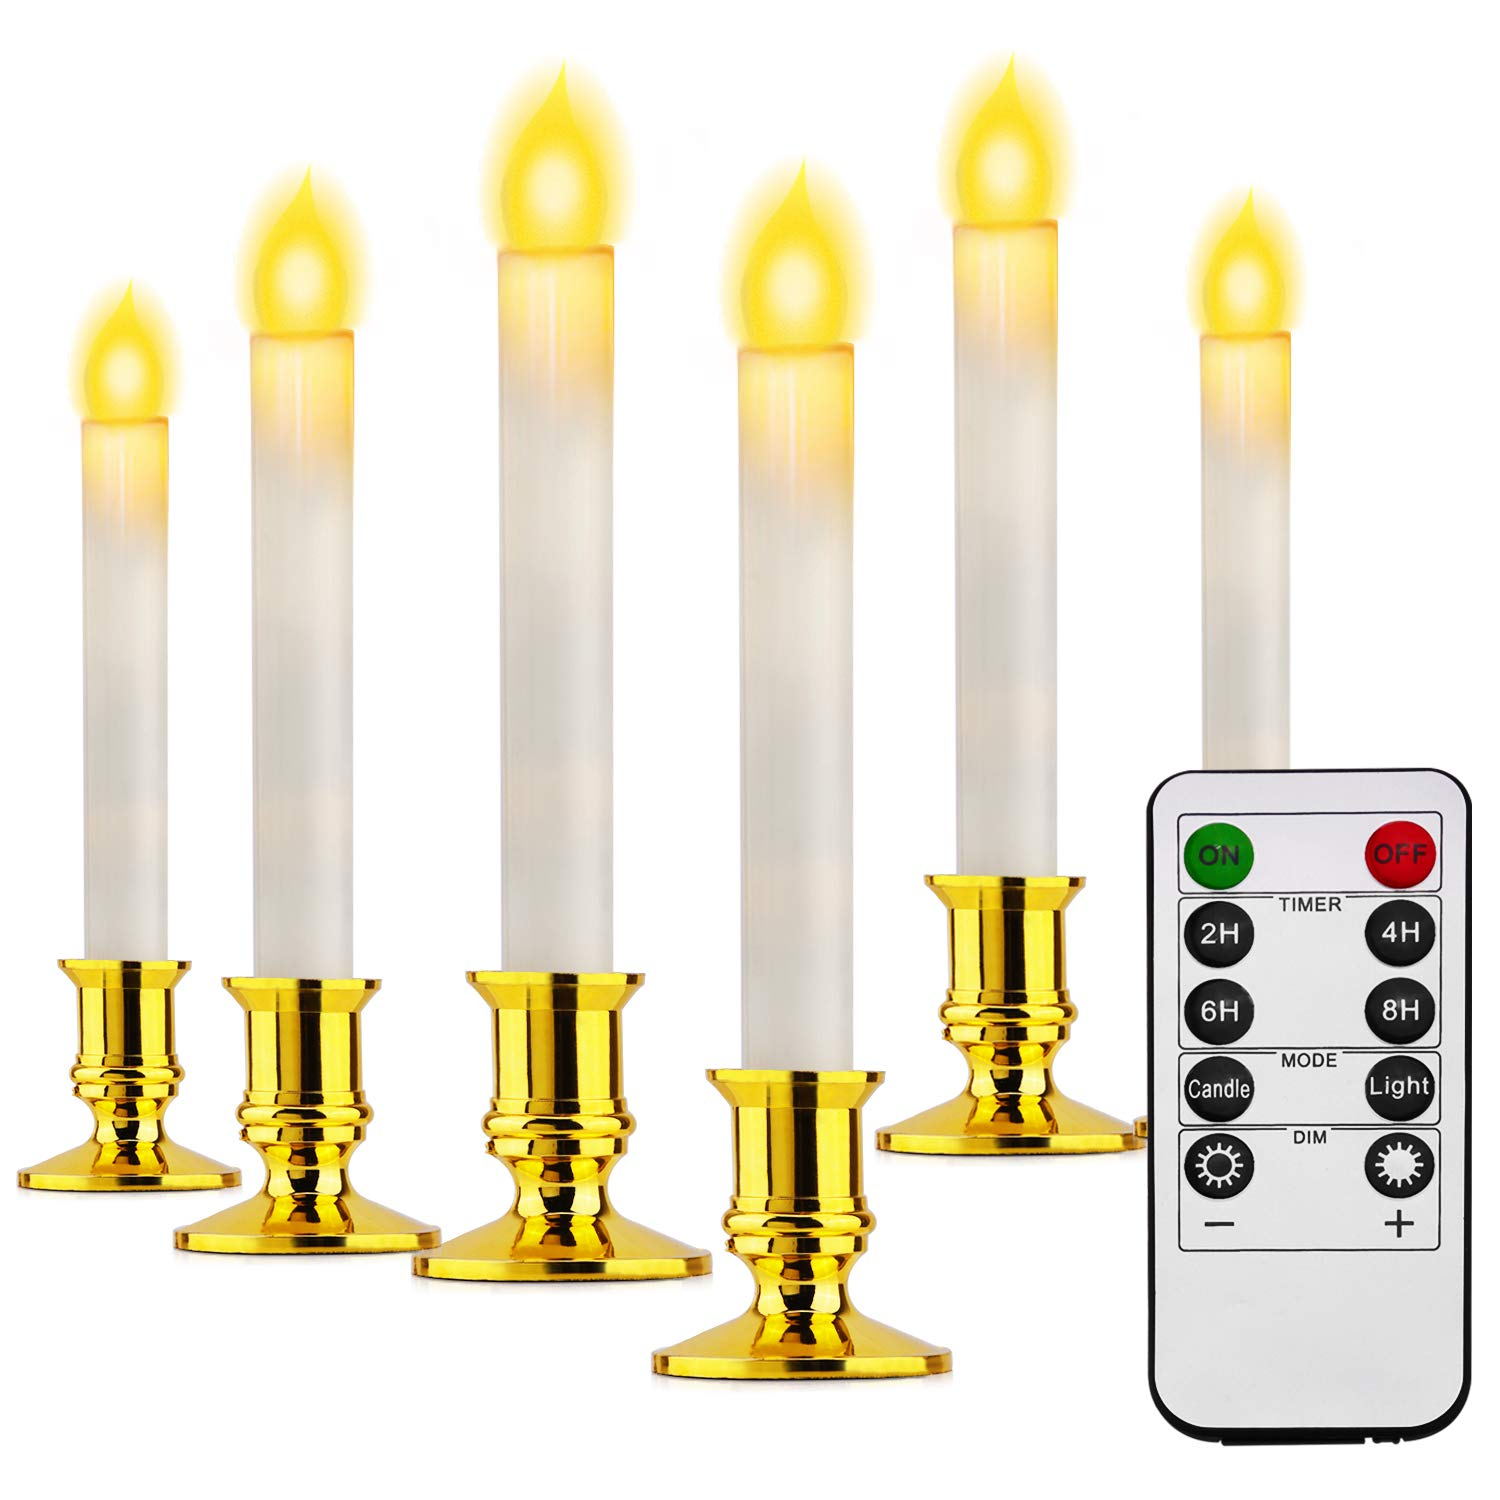 TURN RAISE Decorative Flameless Candles White Taper LED Window Candles with Timer and Remote Control Battery Operated Candles for Seasonal Festival Celebration Batteries not Included Set of 6